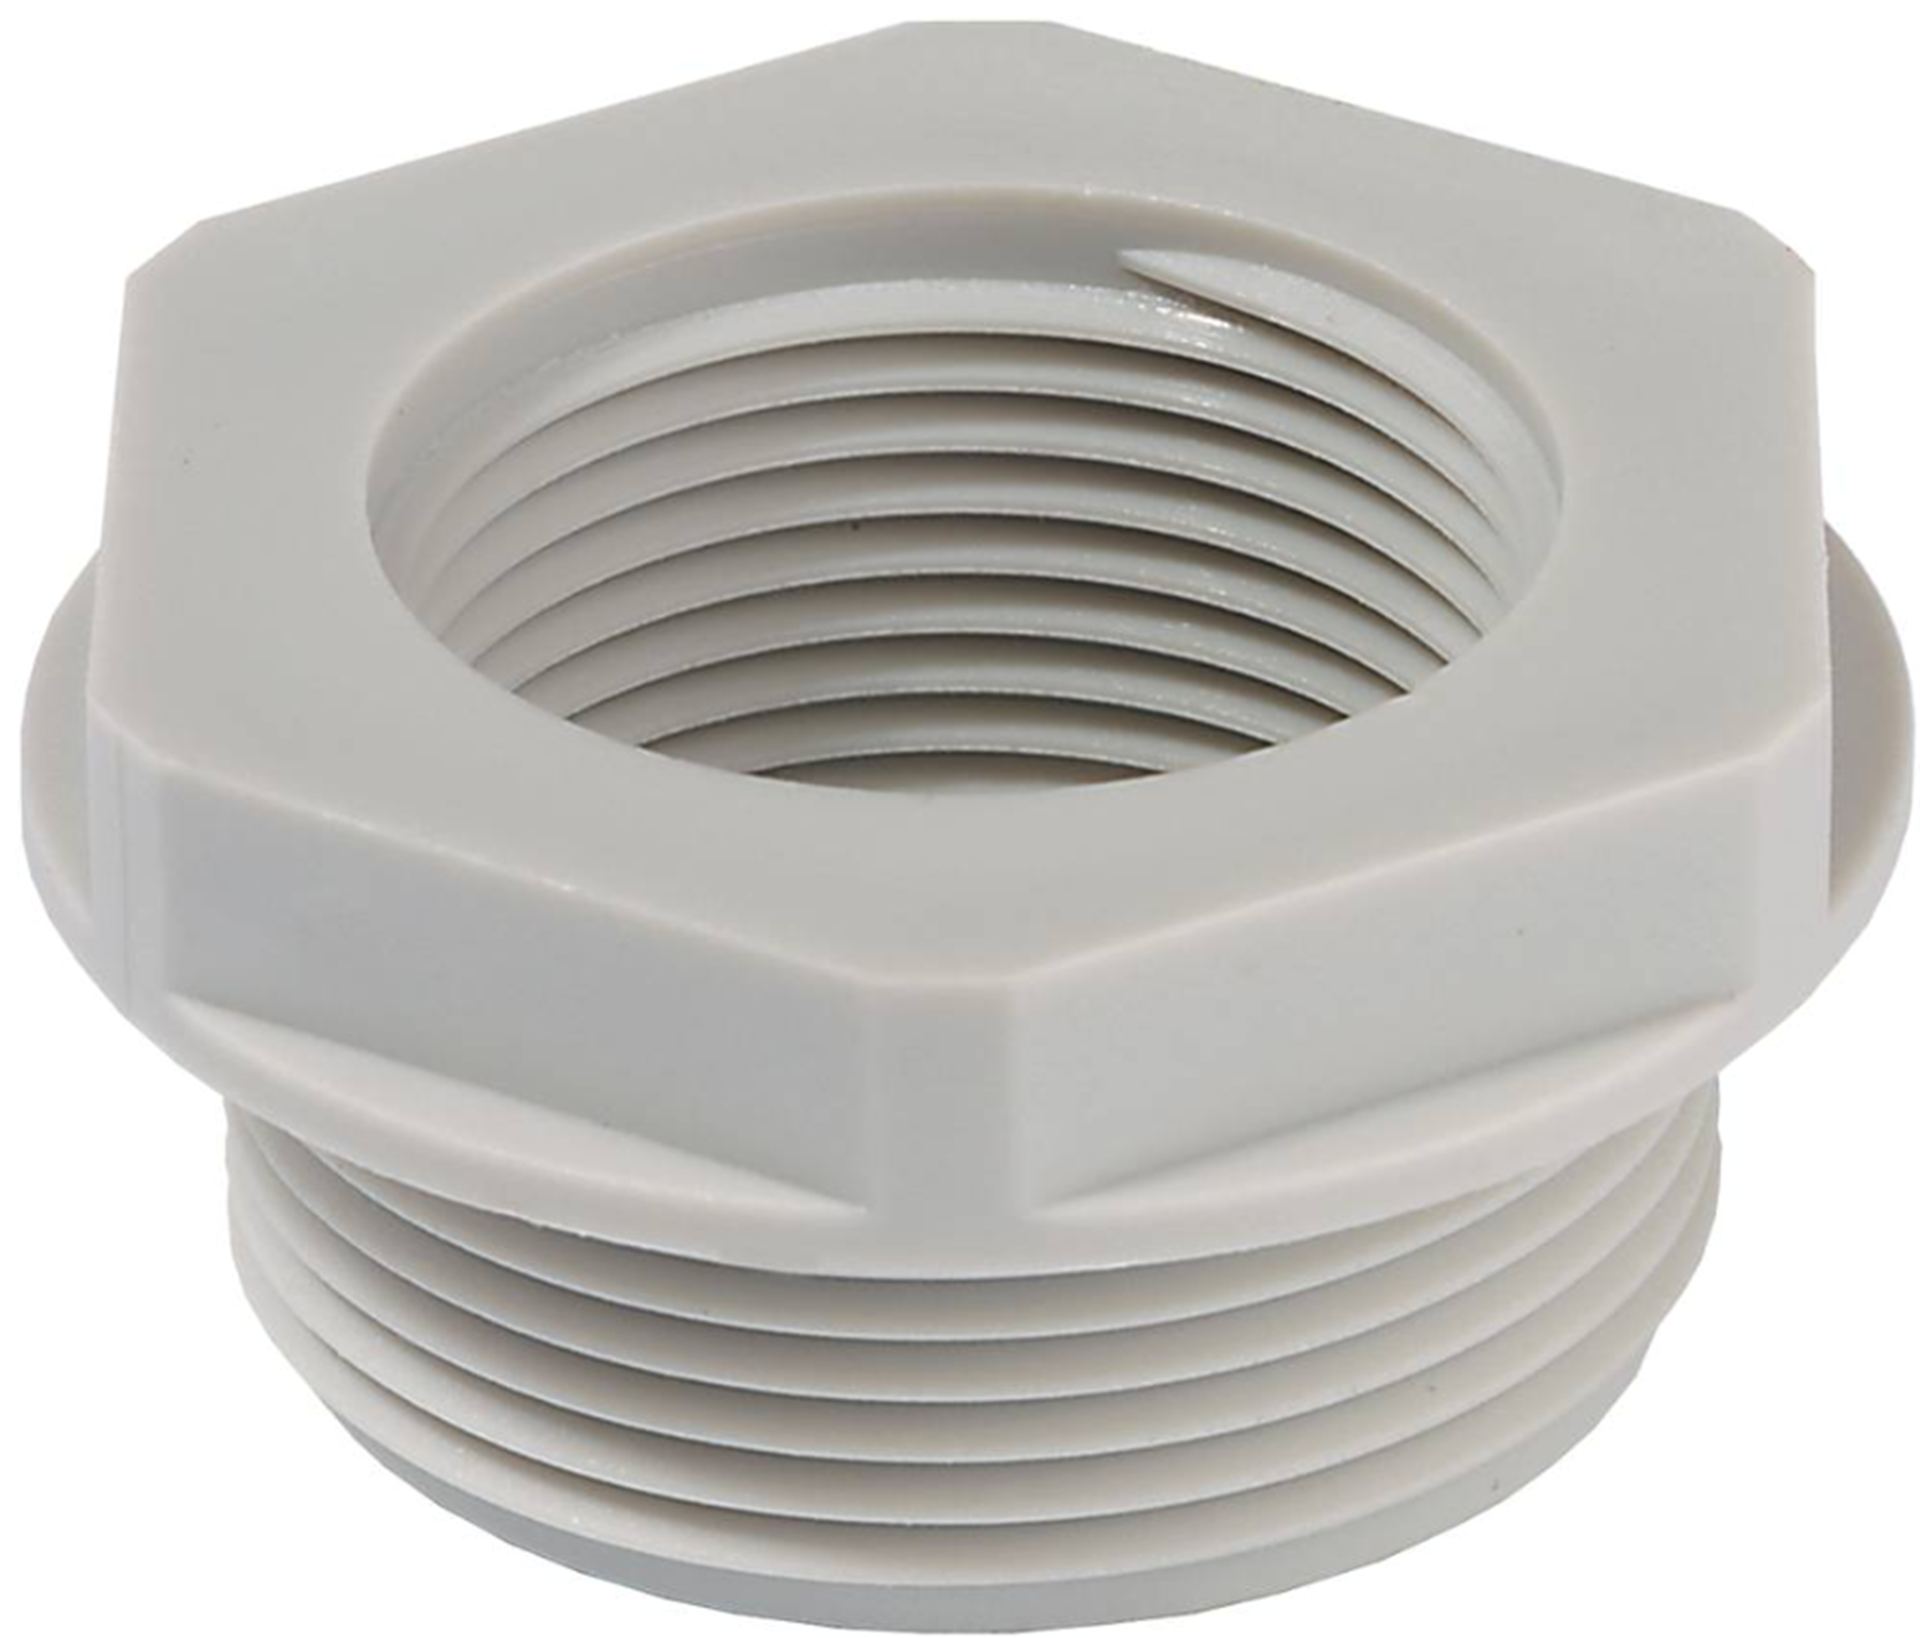 Wiska KRM 25/12 Reduction Adapter LG 10063580